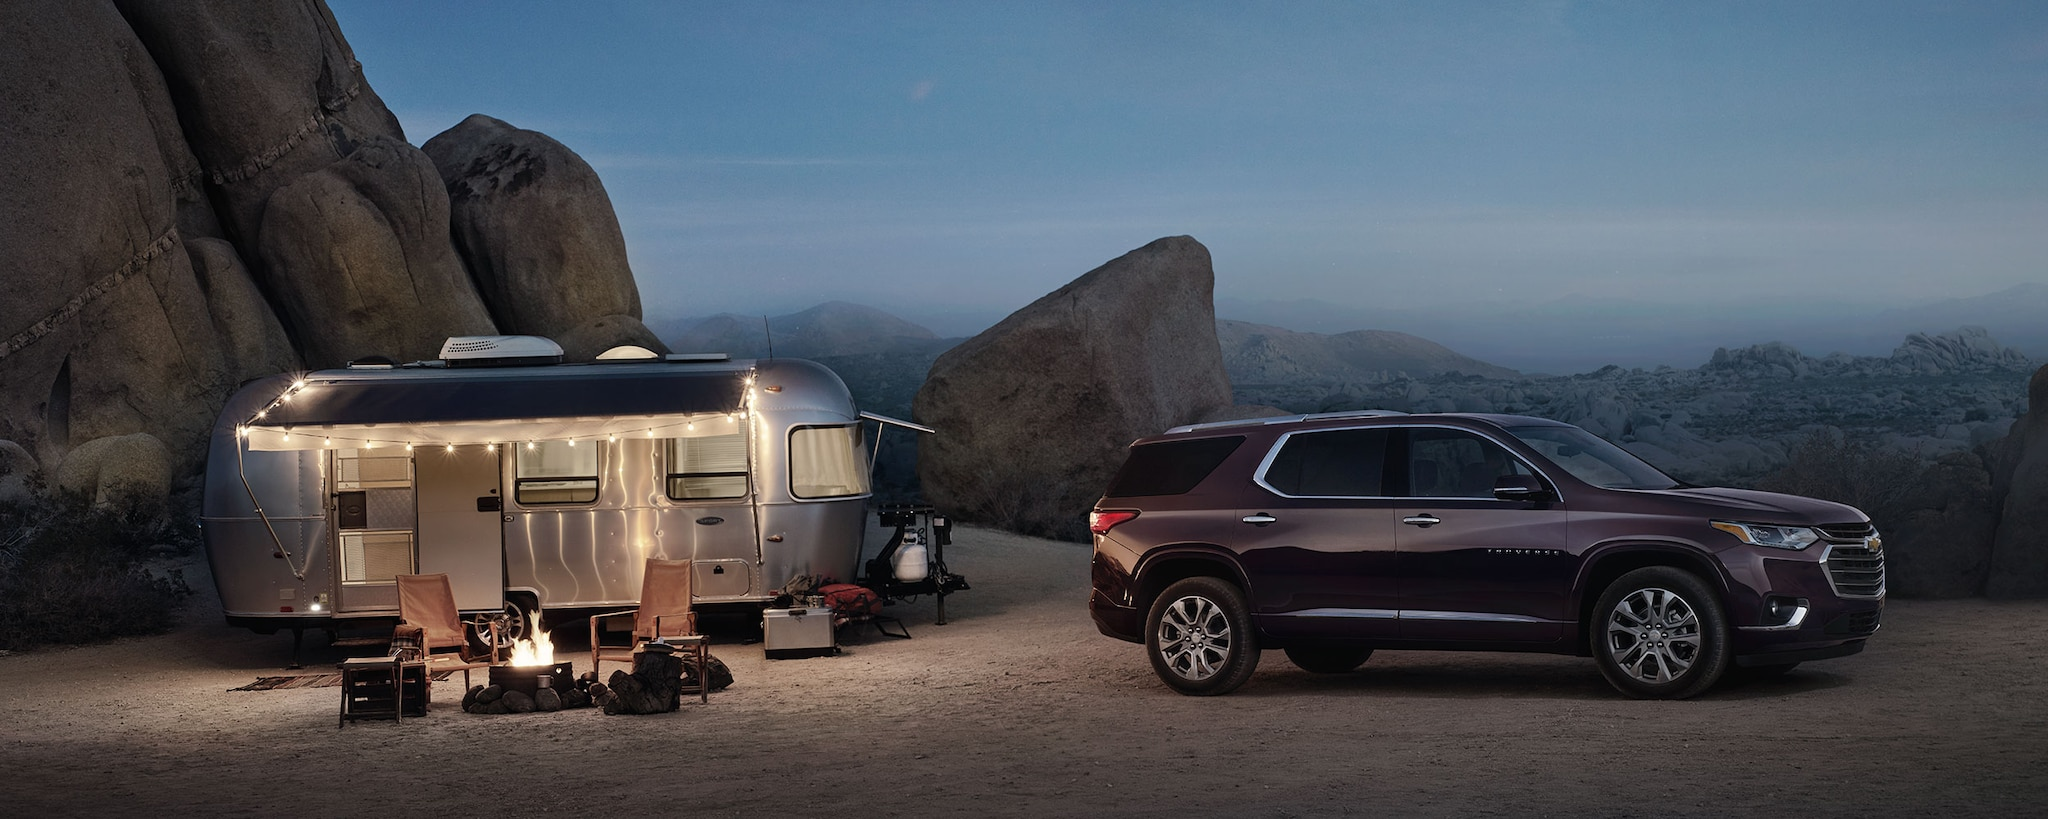 2018 Traverse Midsize SUV Performance: Remolque